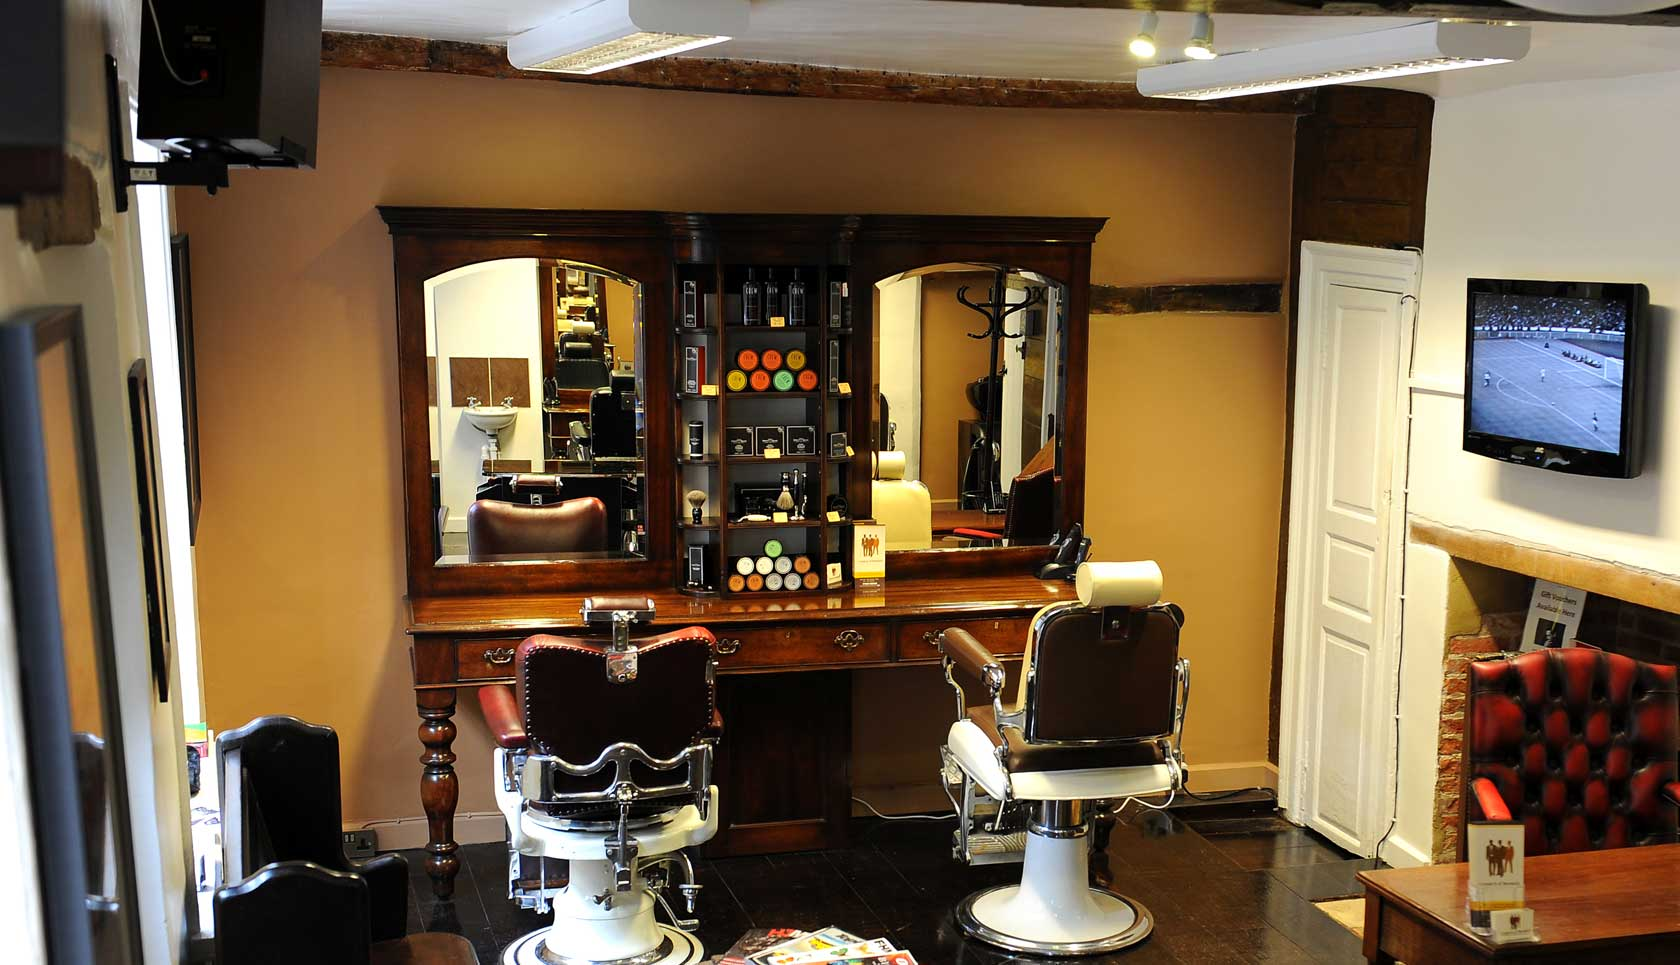 Inside the Truman's hair studio